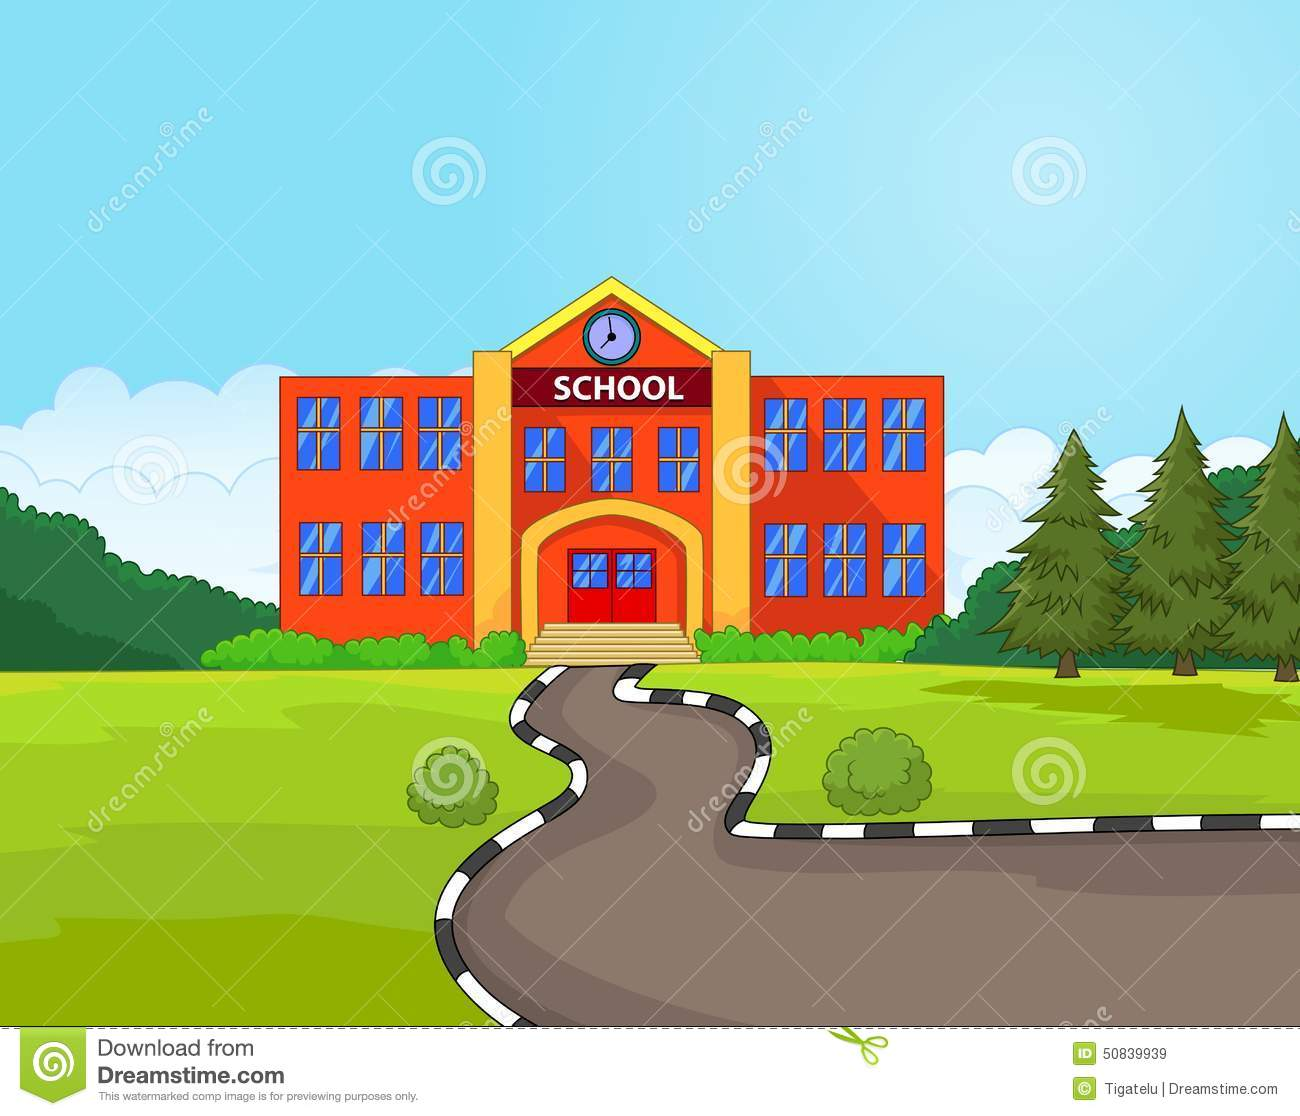 cartoon school building stock vector illustration of cartoon school building drawing cartoon school building black and white